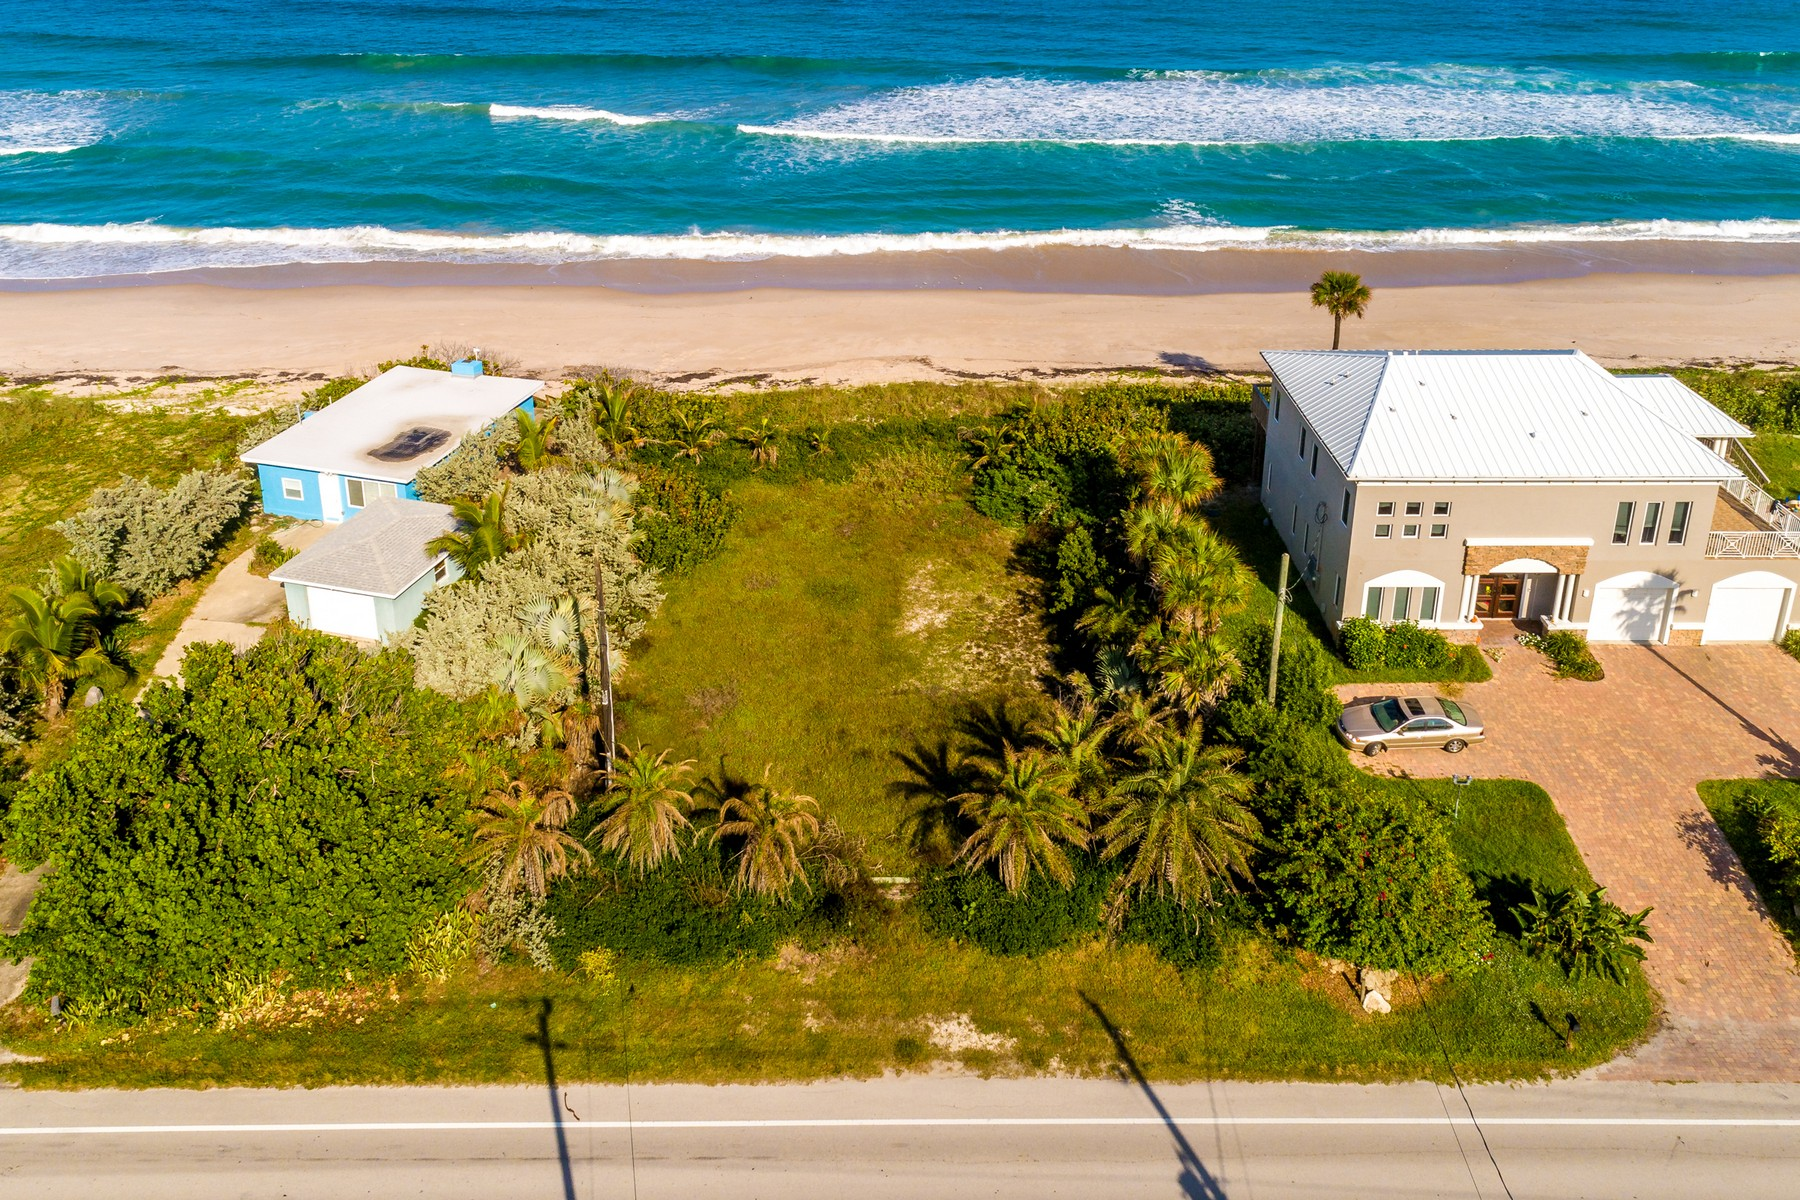 Beautiful Oceanfront Lot in South Beaches 6945 Highway A1A Melbourne Beach, Florida 32951 Hoa Kỳ